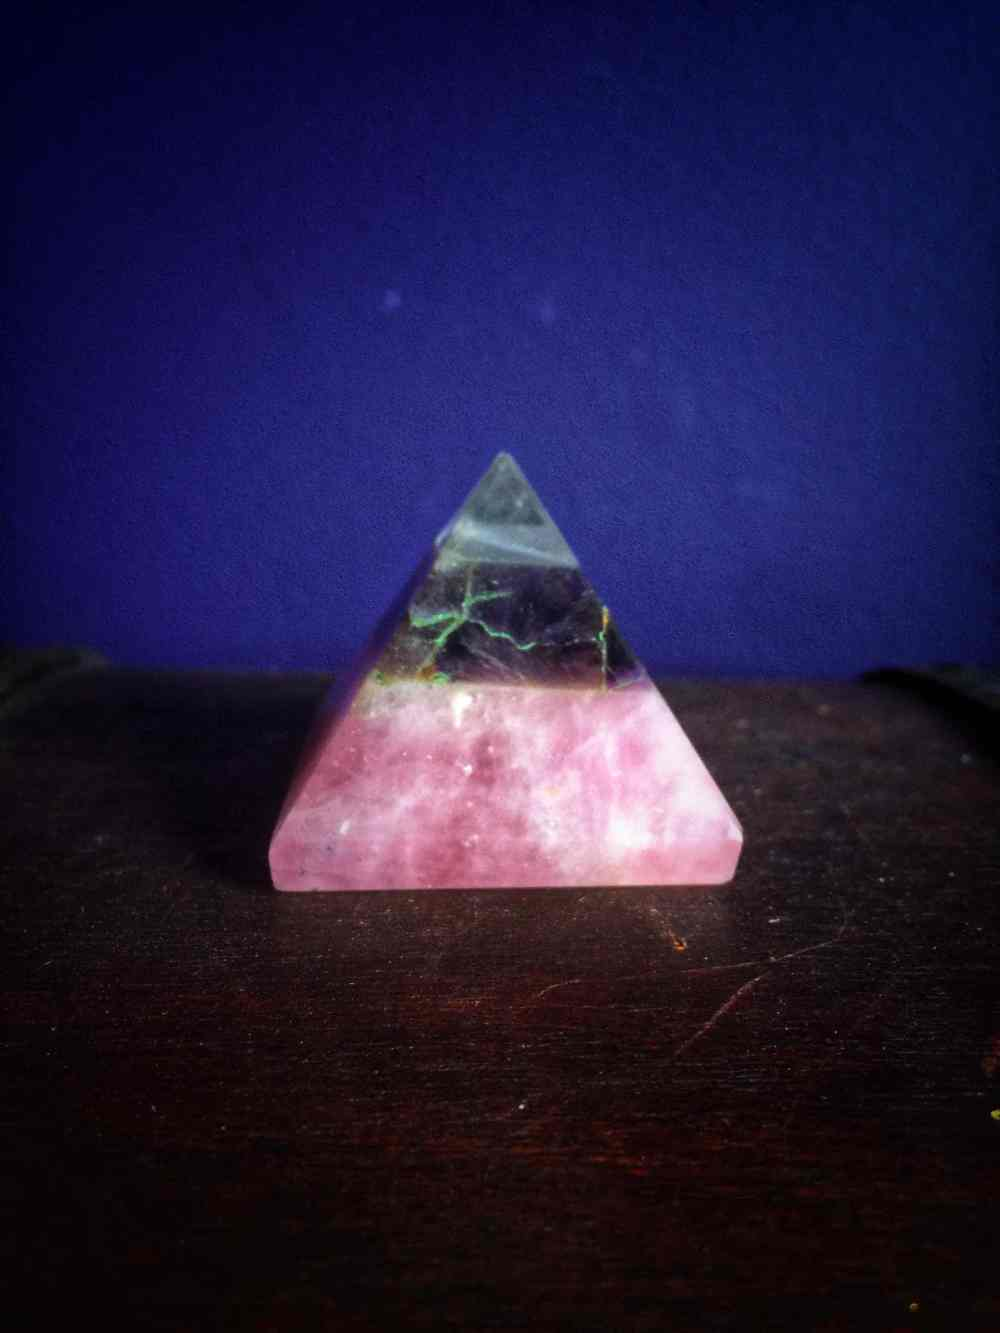 Self Love Pyramid